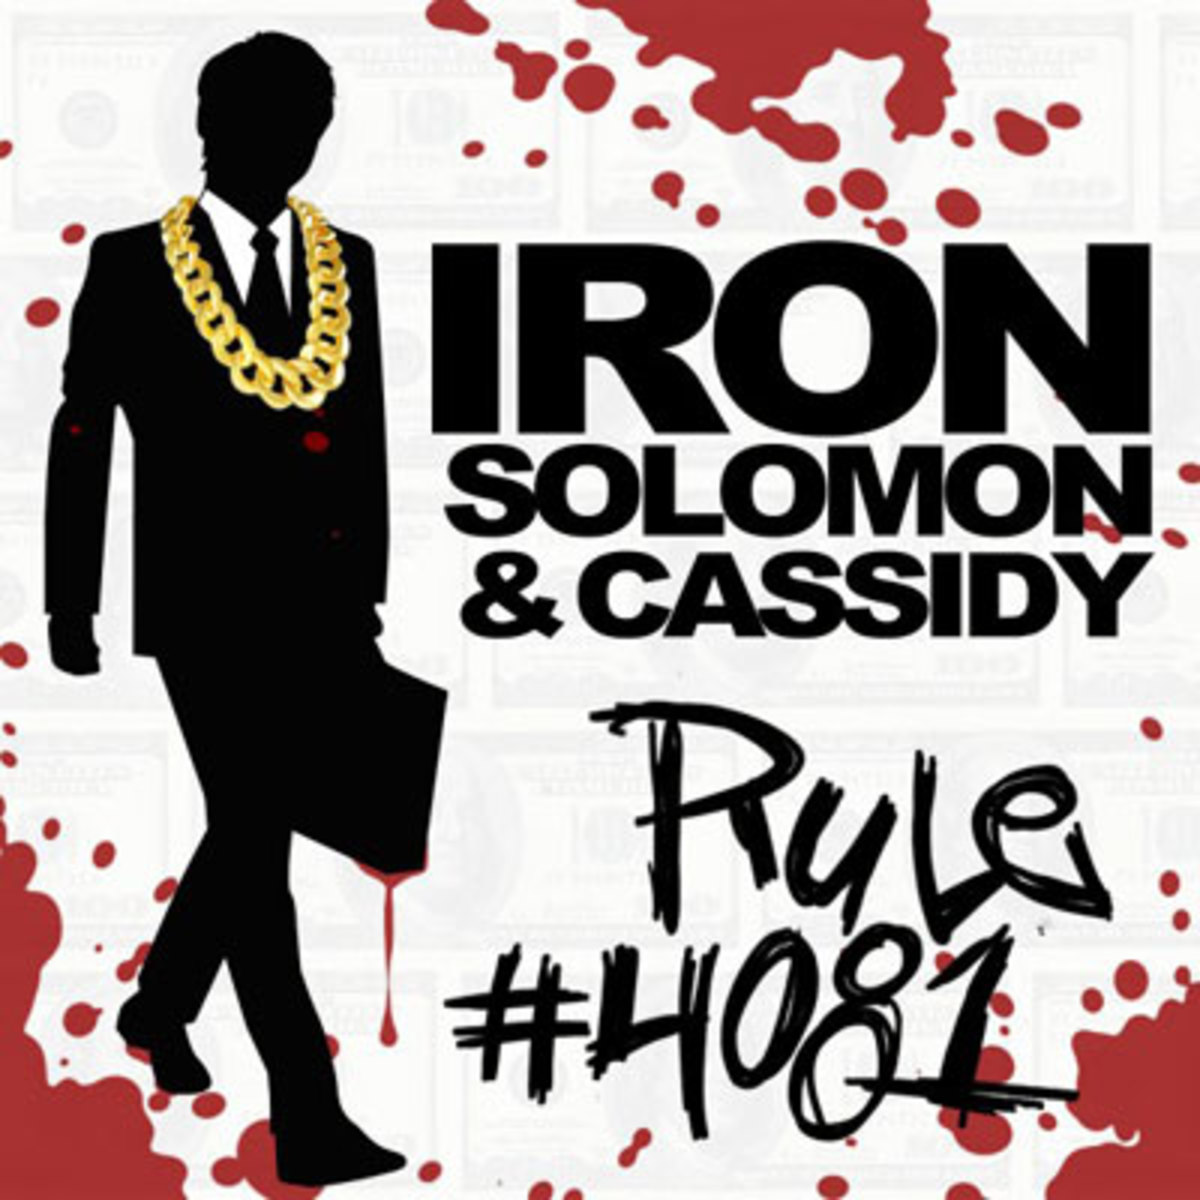 ironsolomon-rule4081.jpg